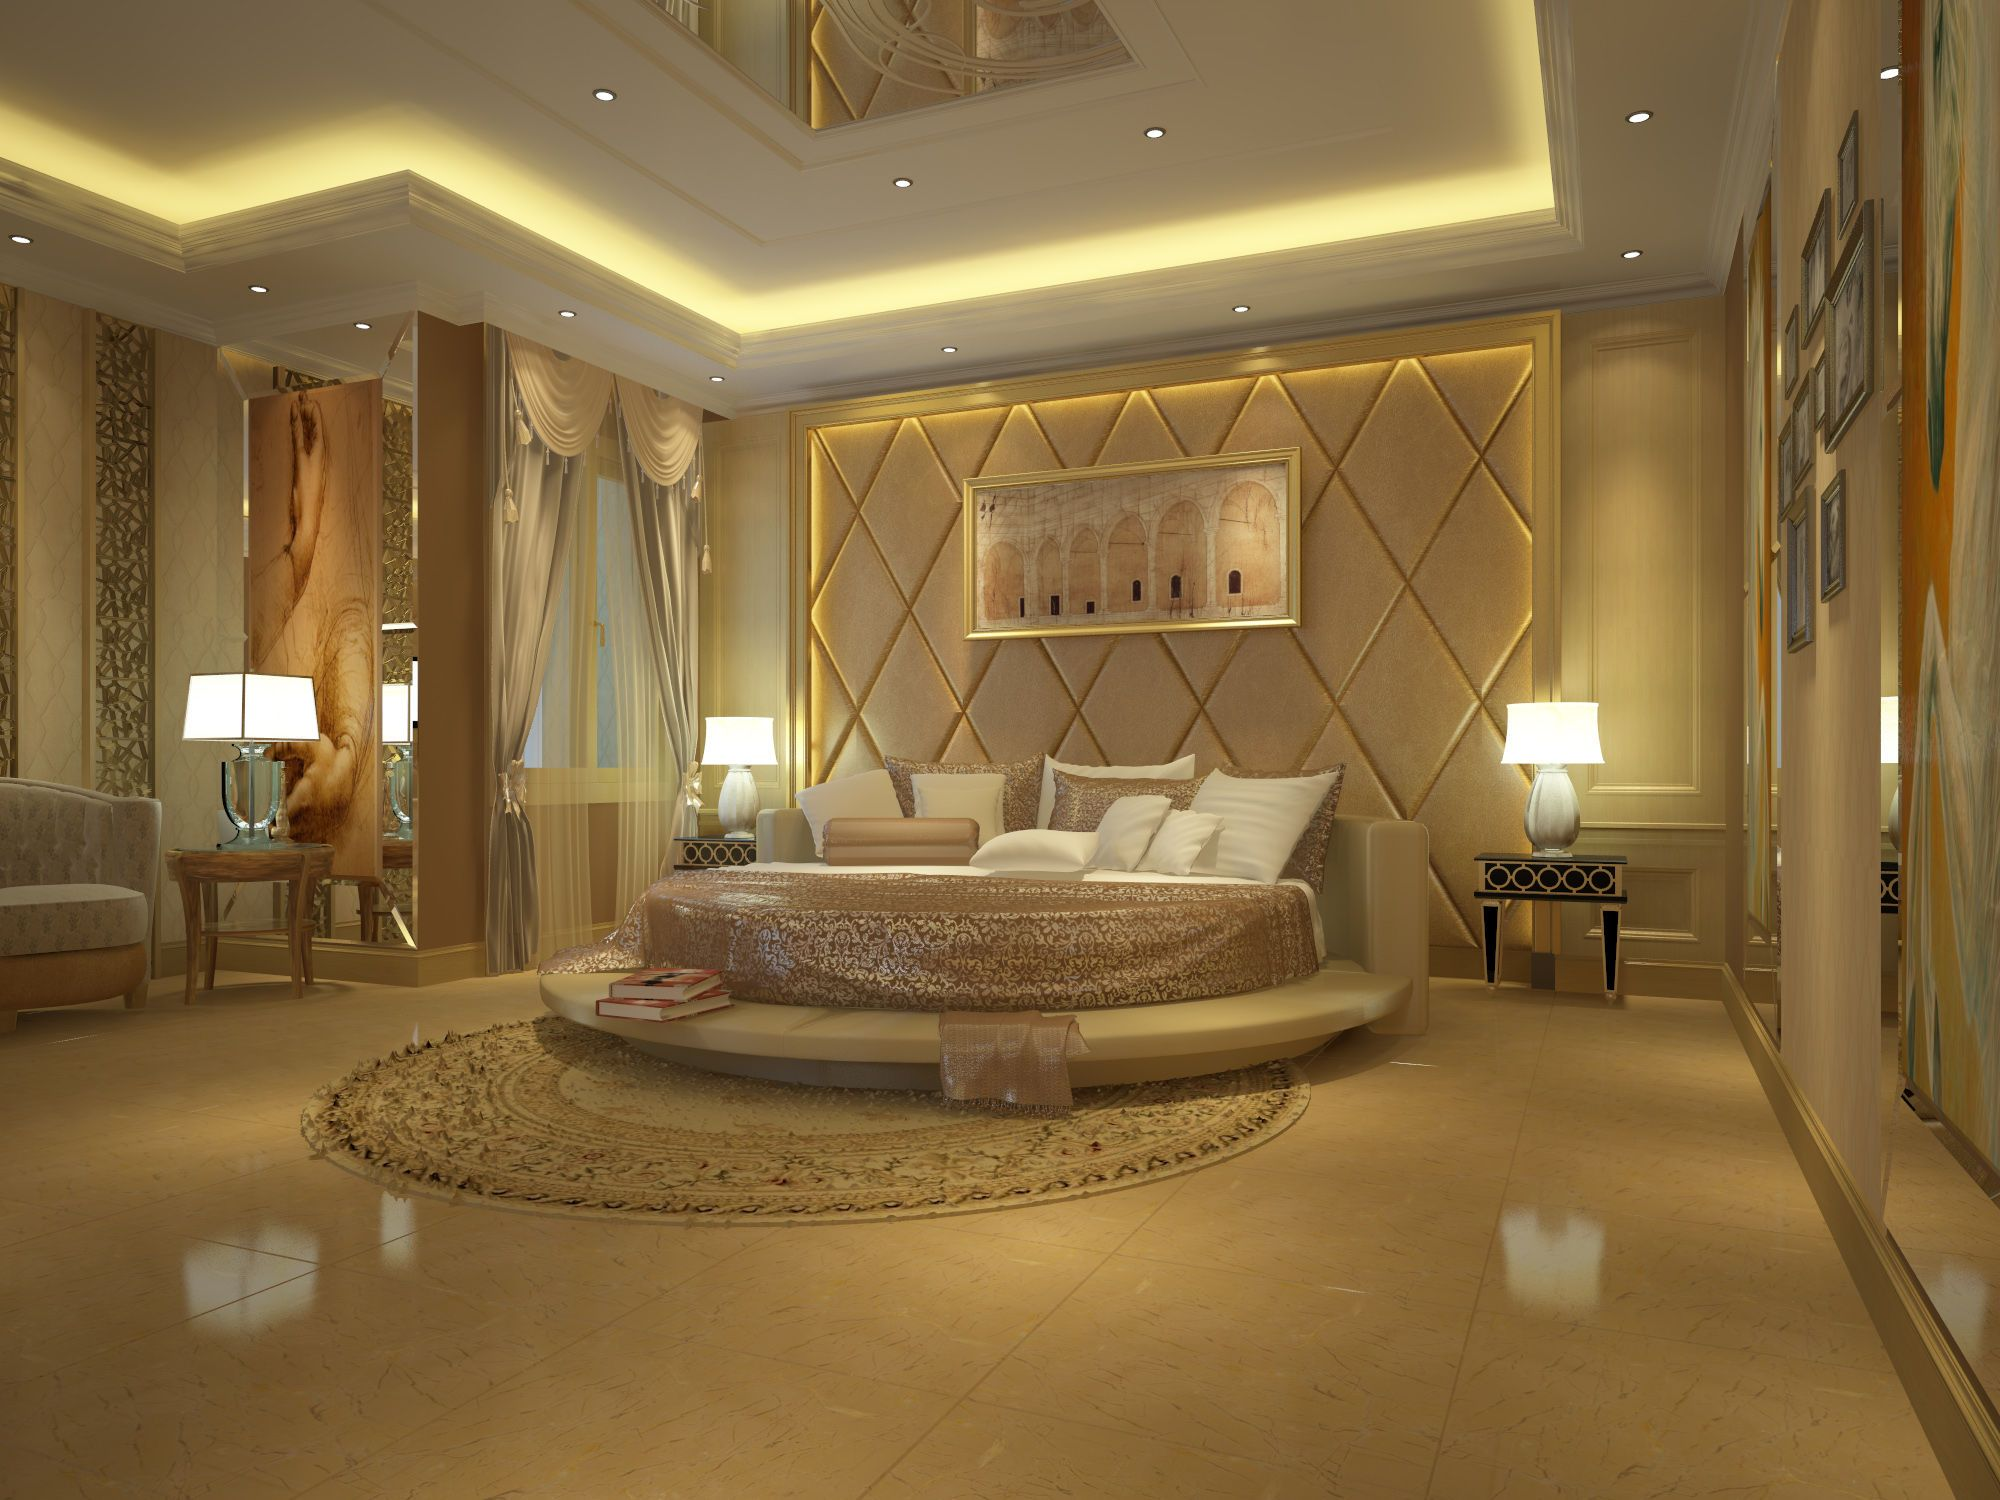 Luxury Master Bedroom Design With A White Marble Floor